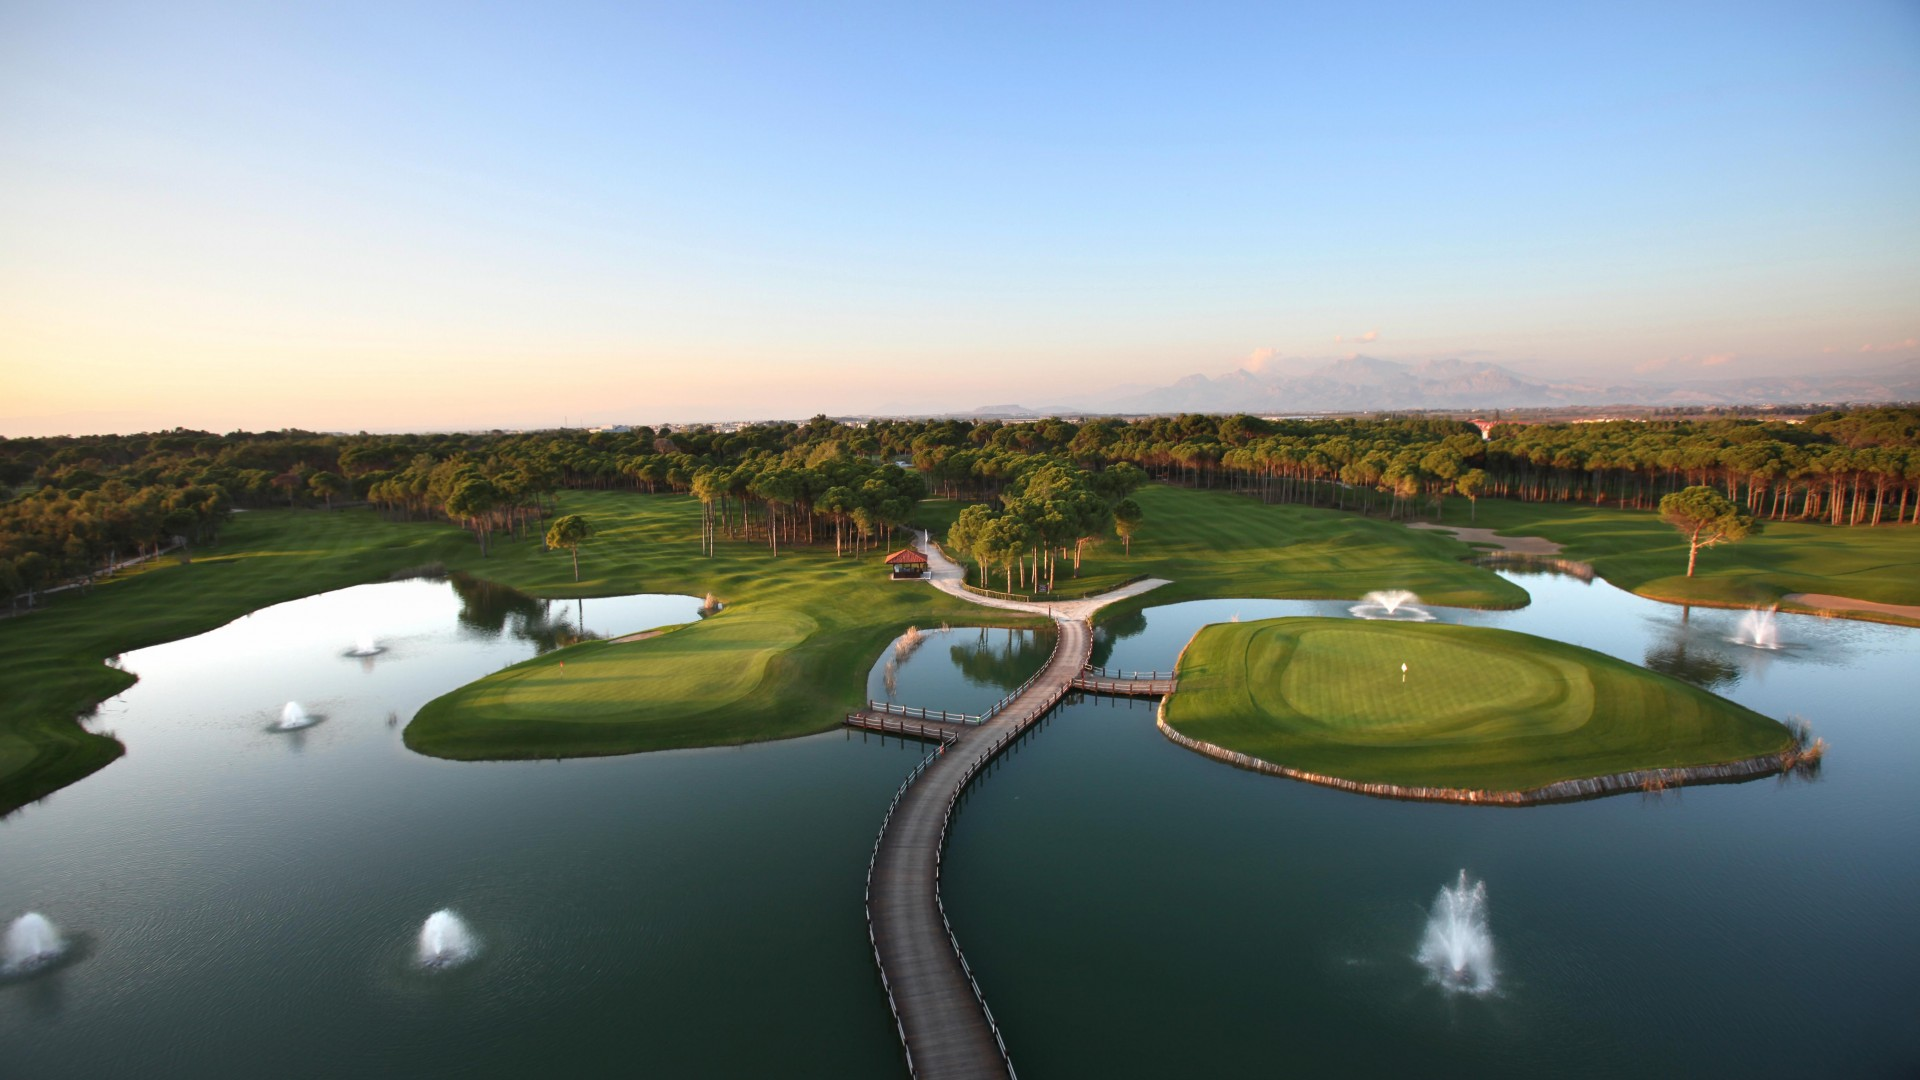 Dubai Hotels With Golf Courses